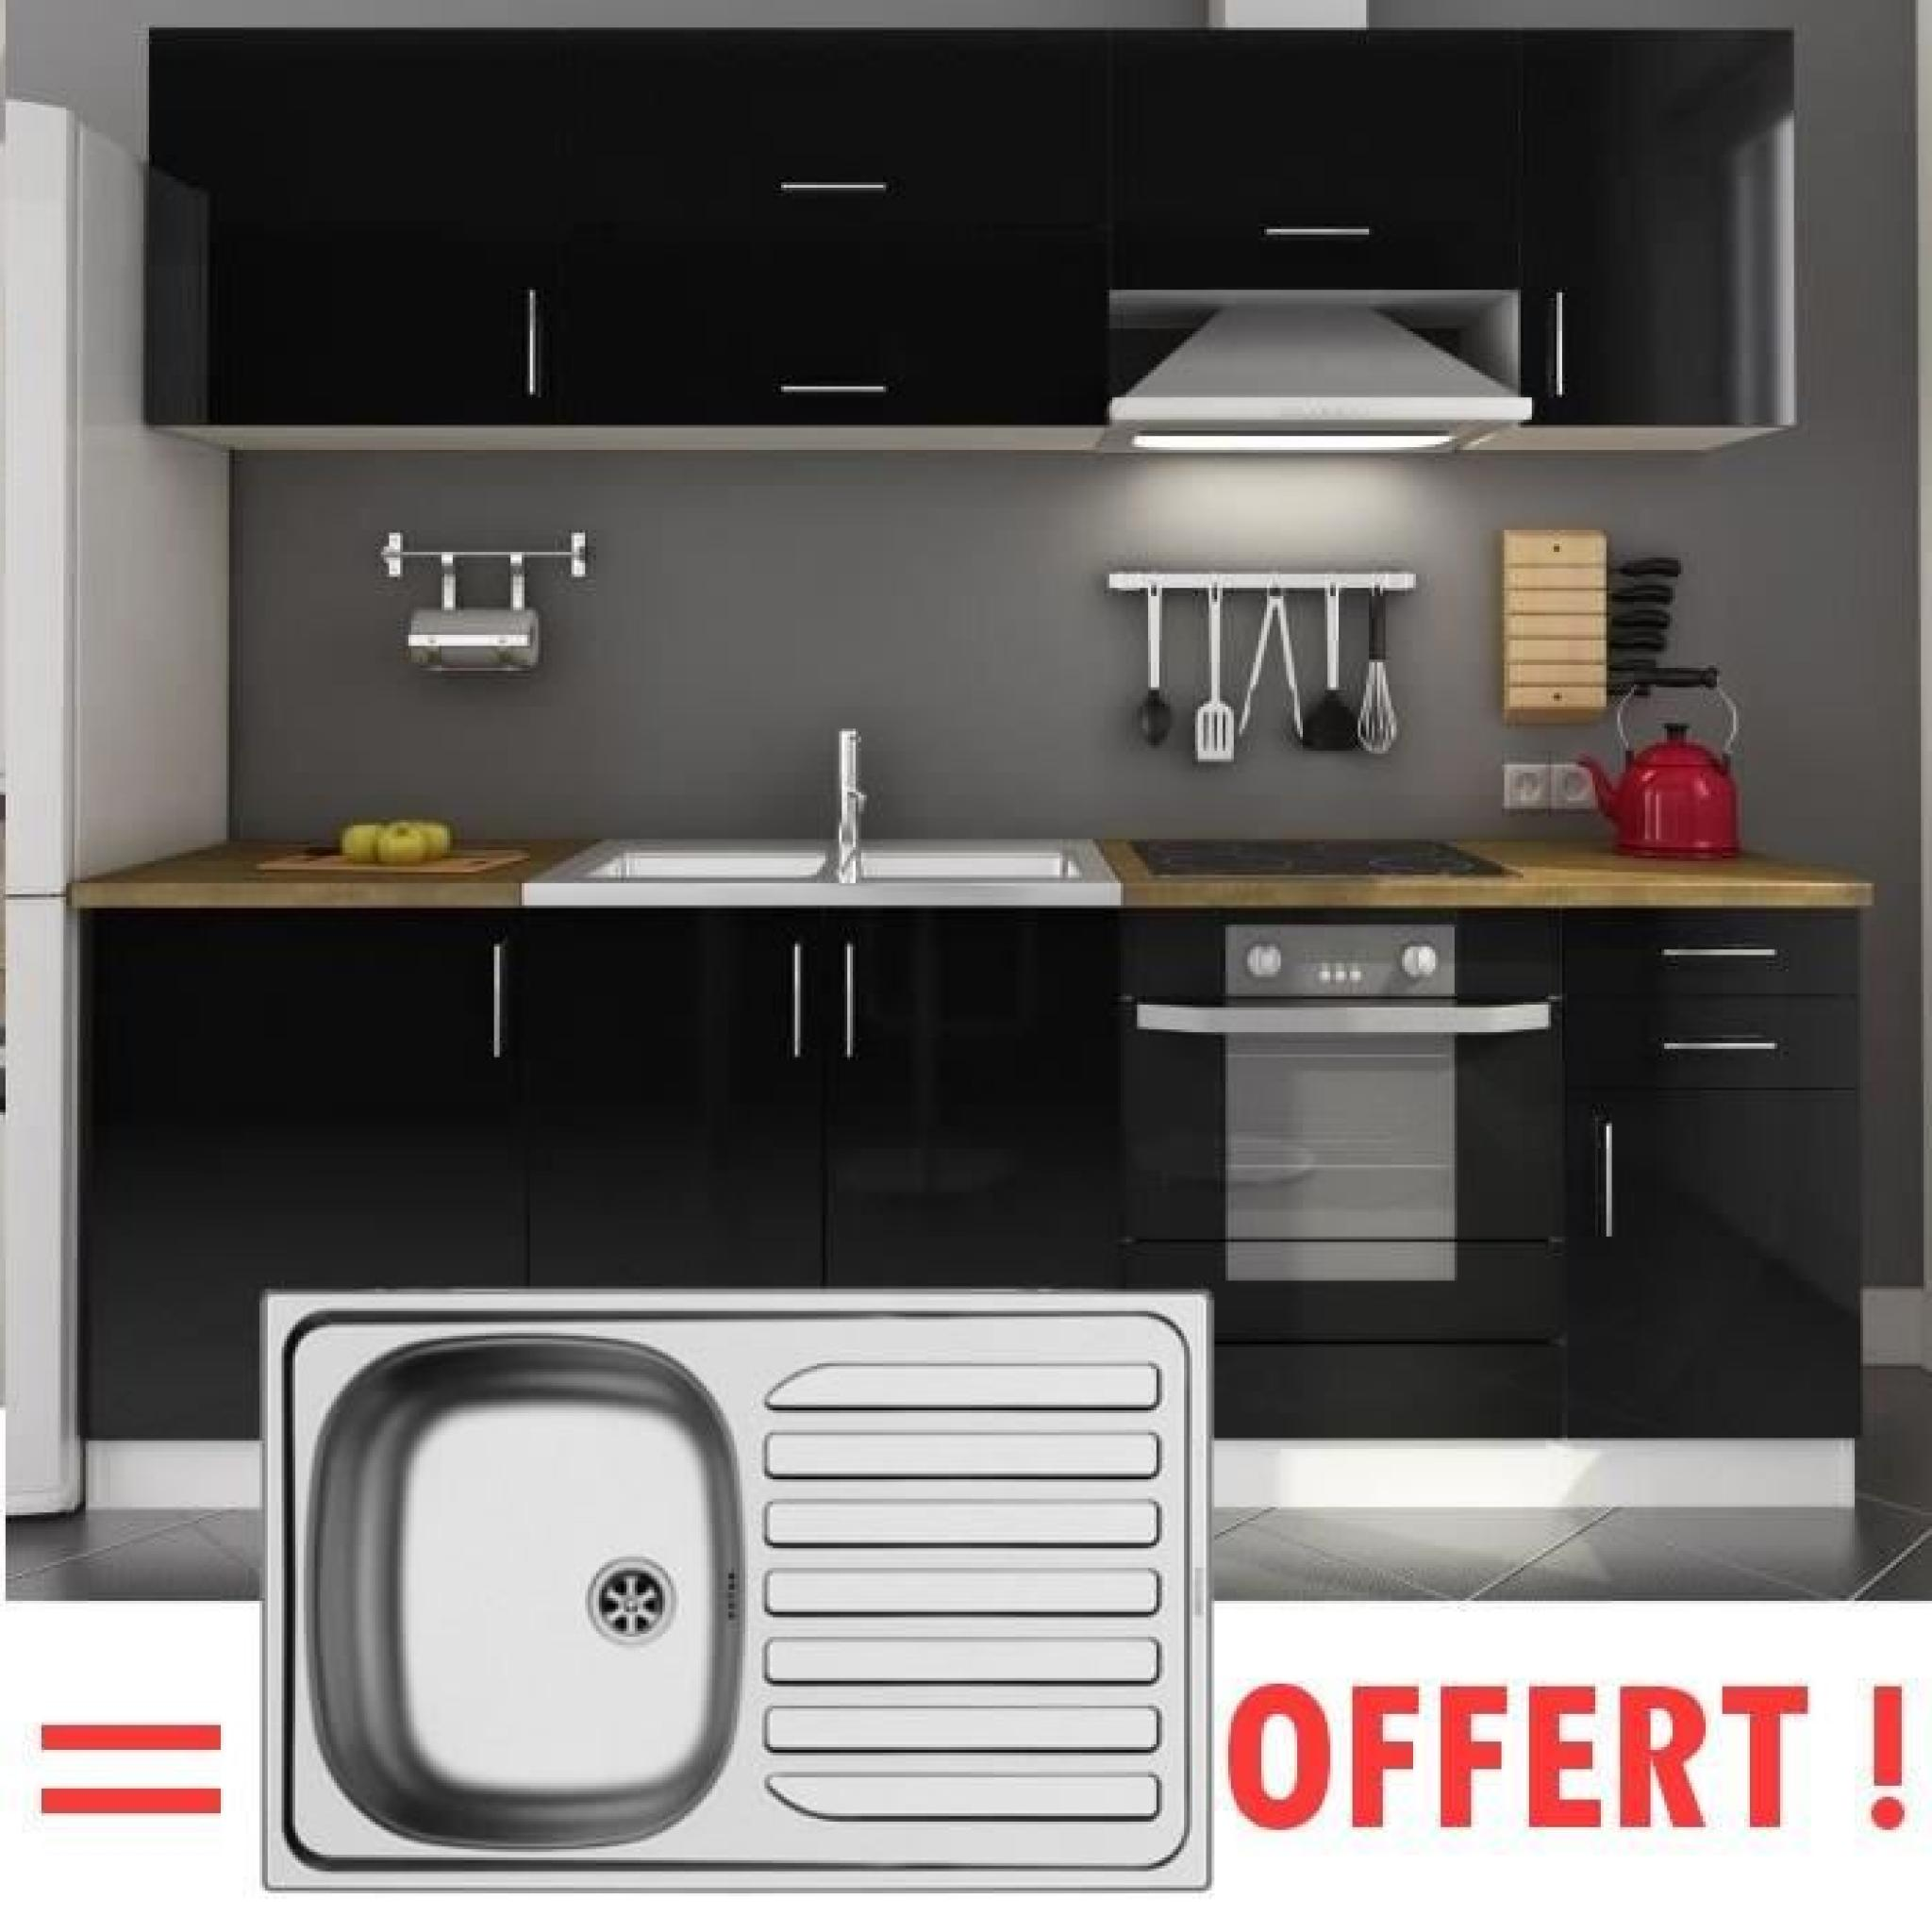 arty cuisine compl te 2m40 vier offert laqu noir achat vente cuisine complete pas cher. Black Bedroom Furniture Sets. Home Design Ideas